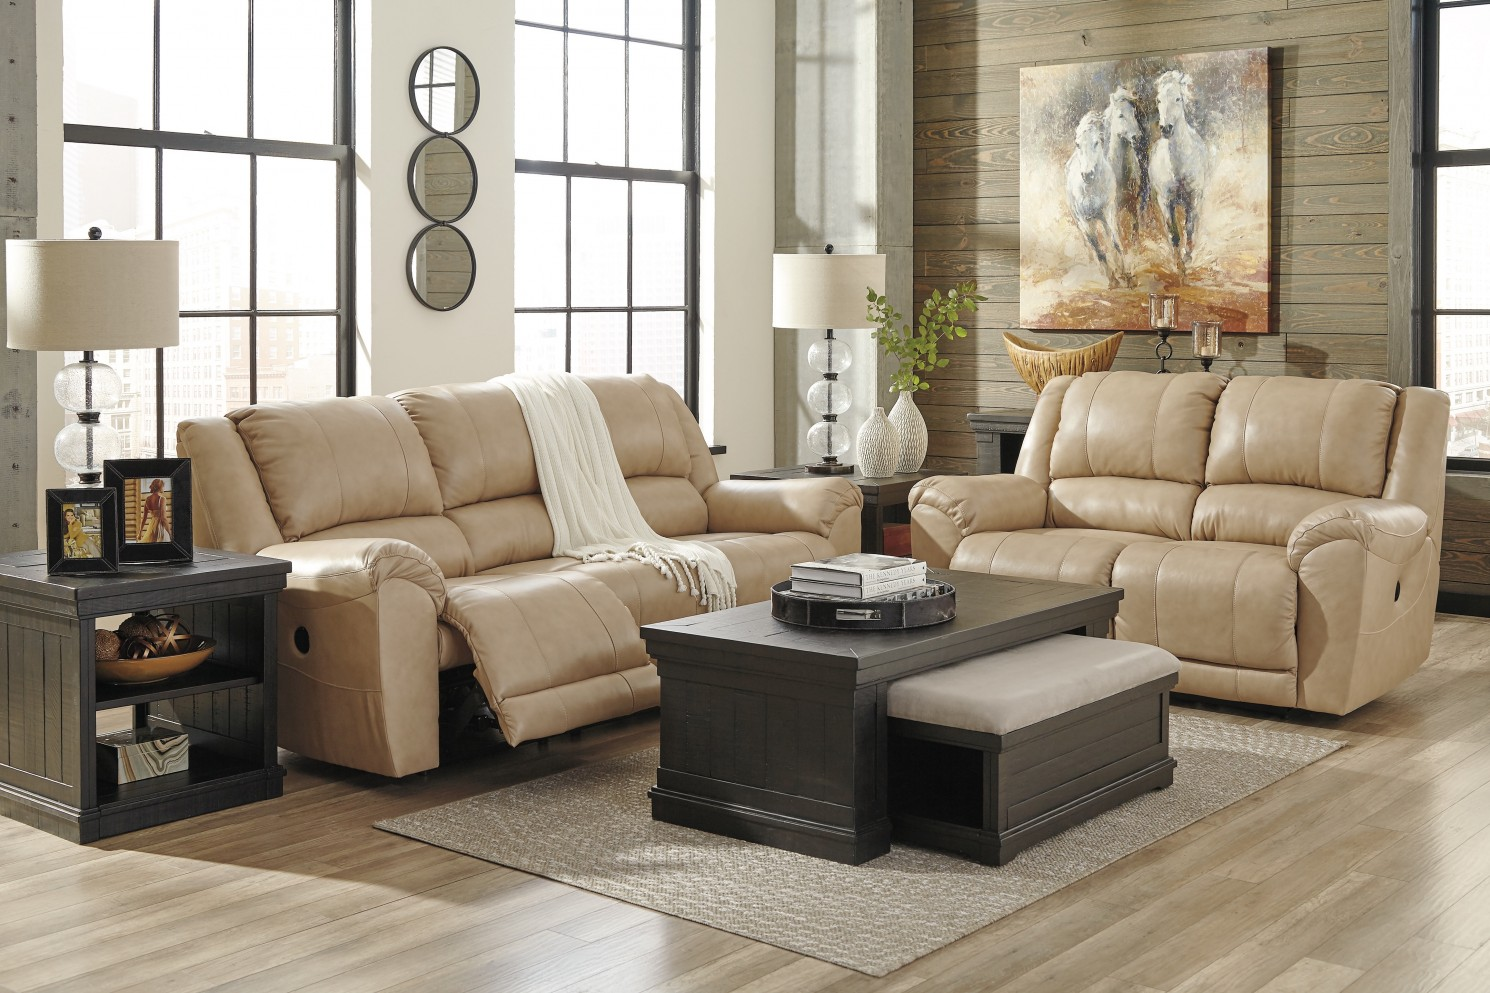 Sharlowe charcoal 3pc coffee table set dallas tx for Charcoal coffee table